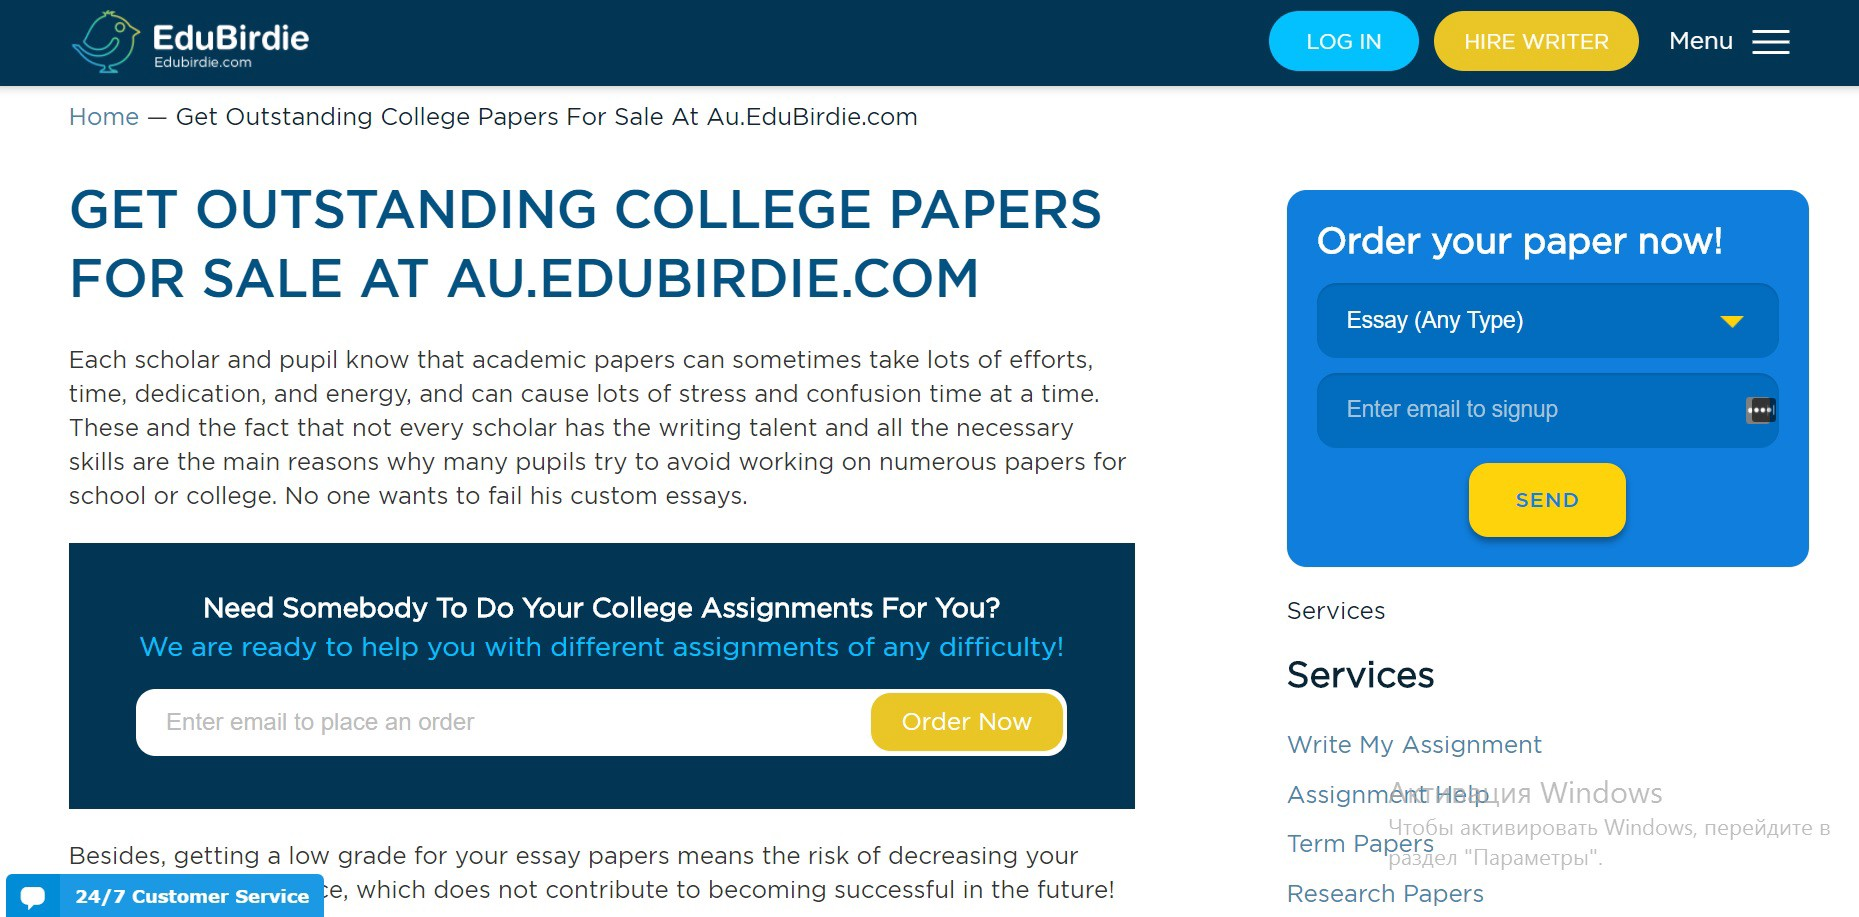 Receive A For College Paper  Edubirdie Au  Medium You Ask Httpsauedubirdiecomcollegepapers To Write Your College Paper  And It Is Ready In A Couple Of Hours